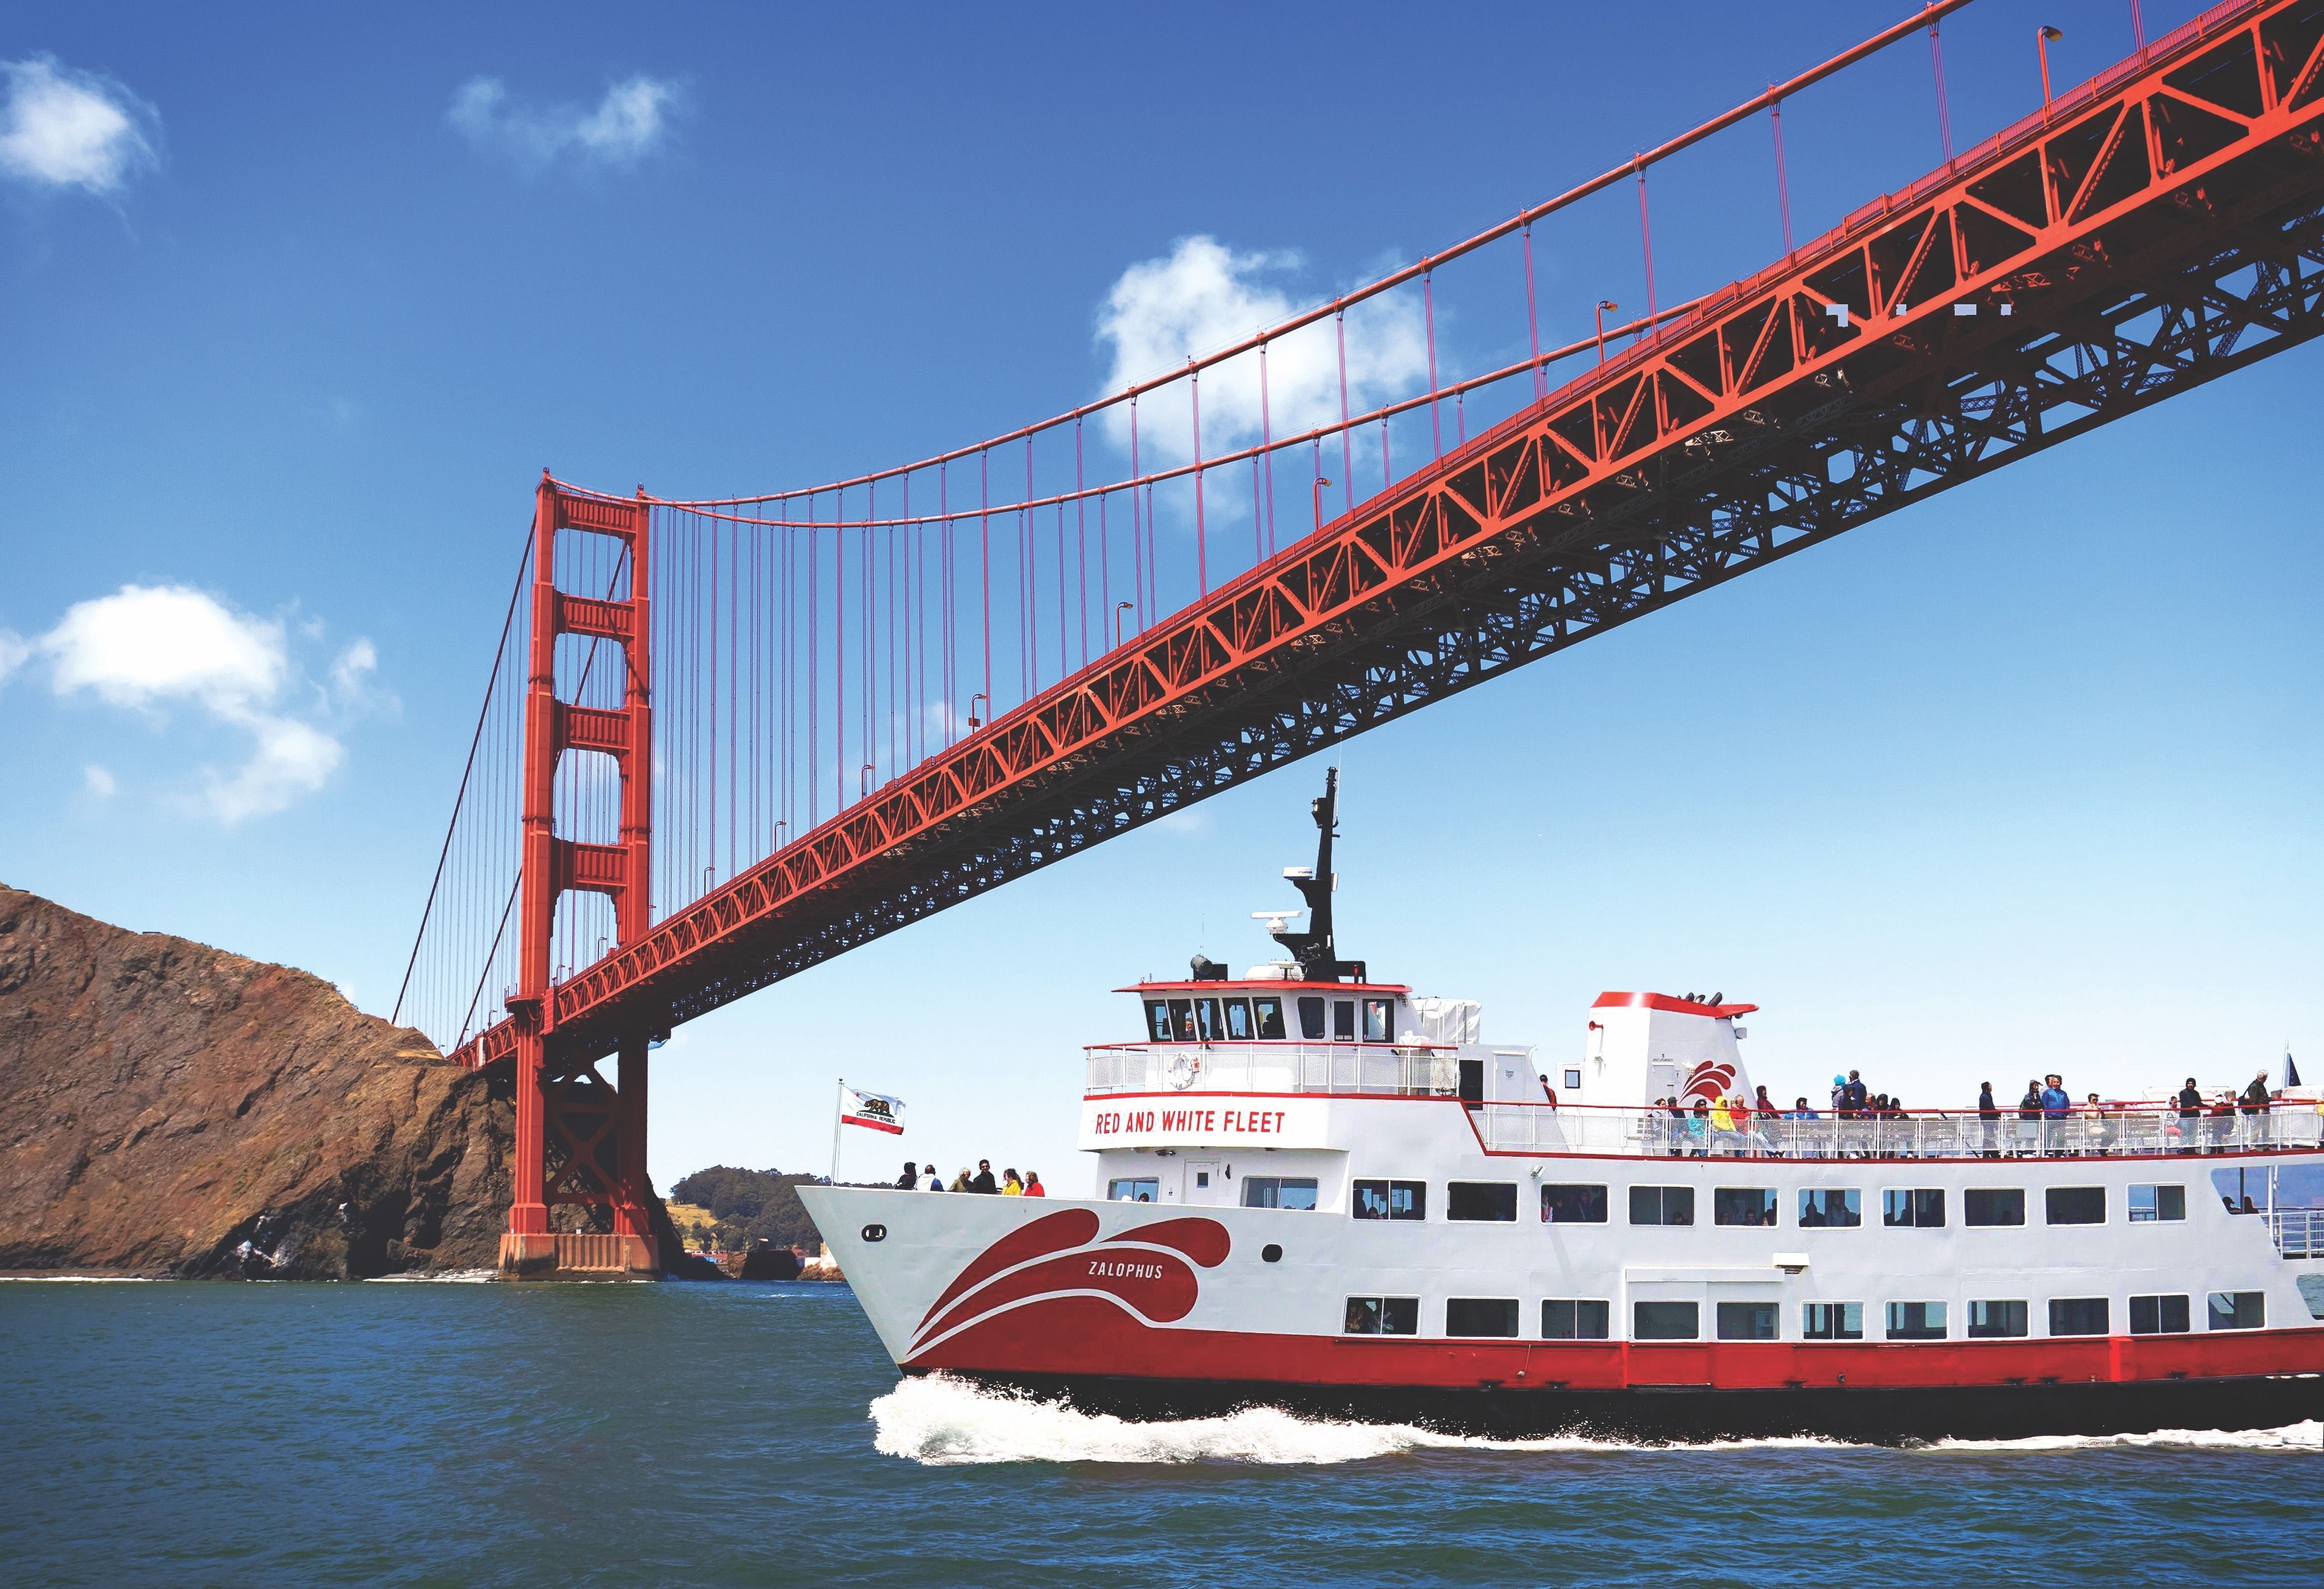 Golden Gate by boat